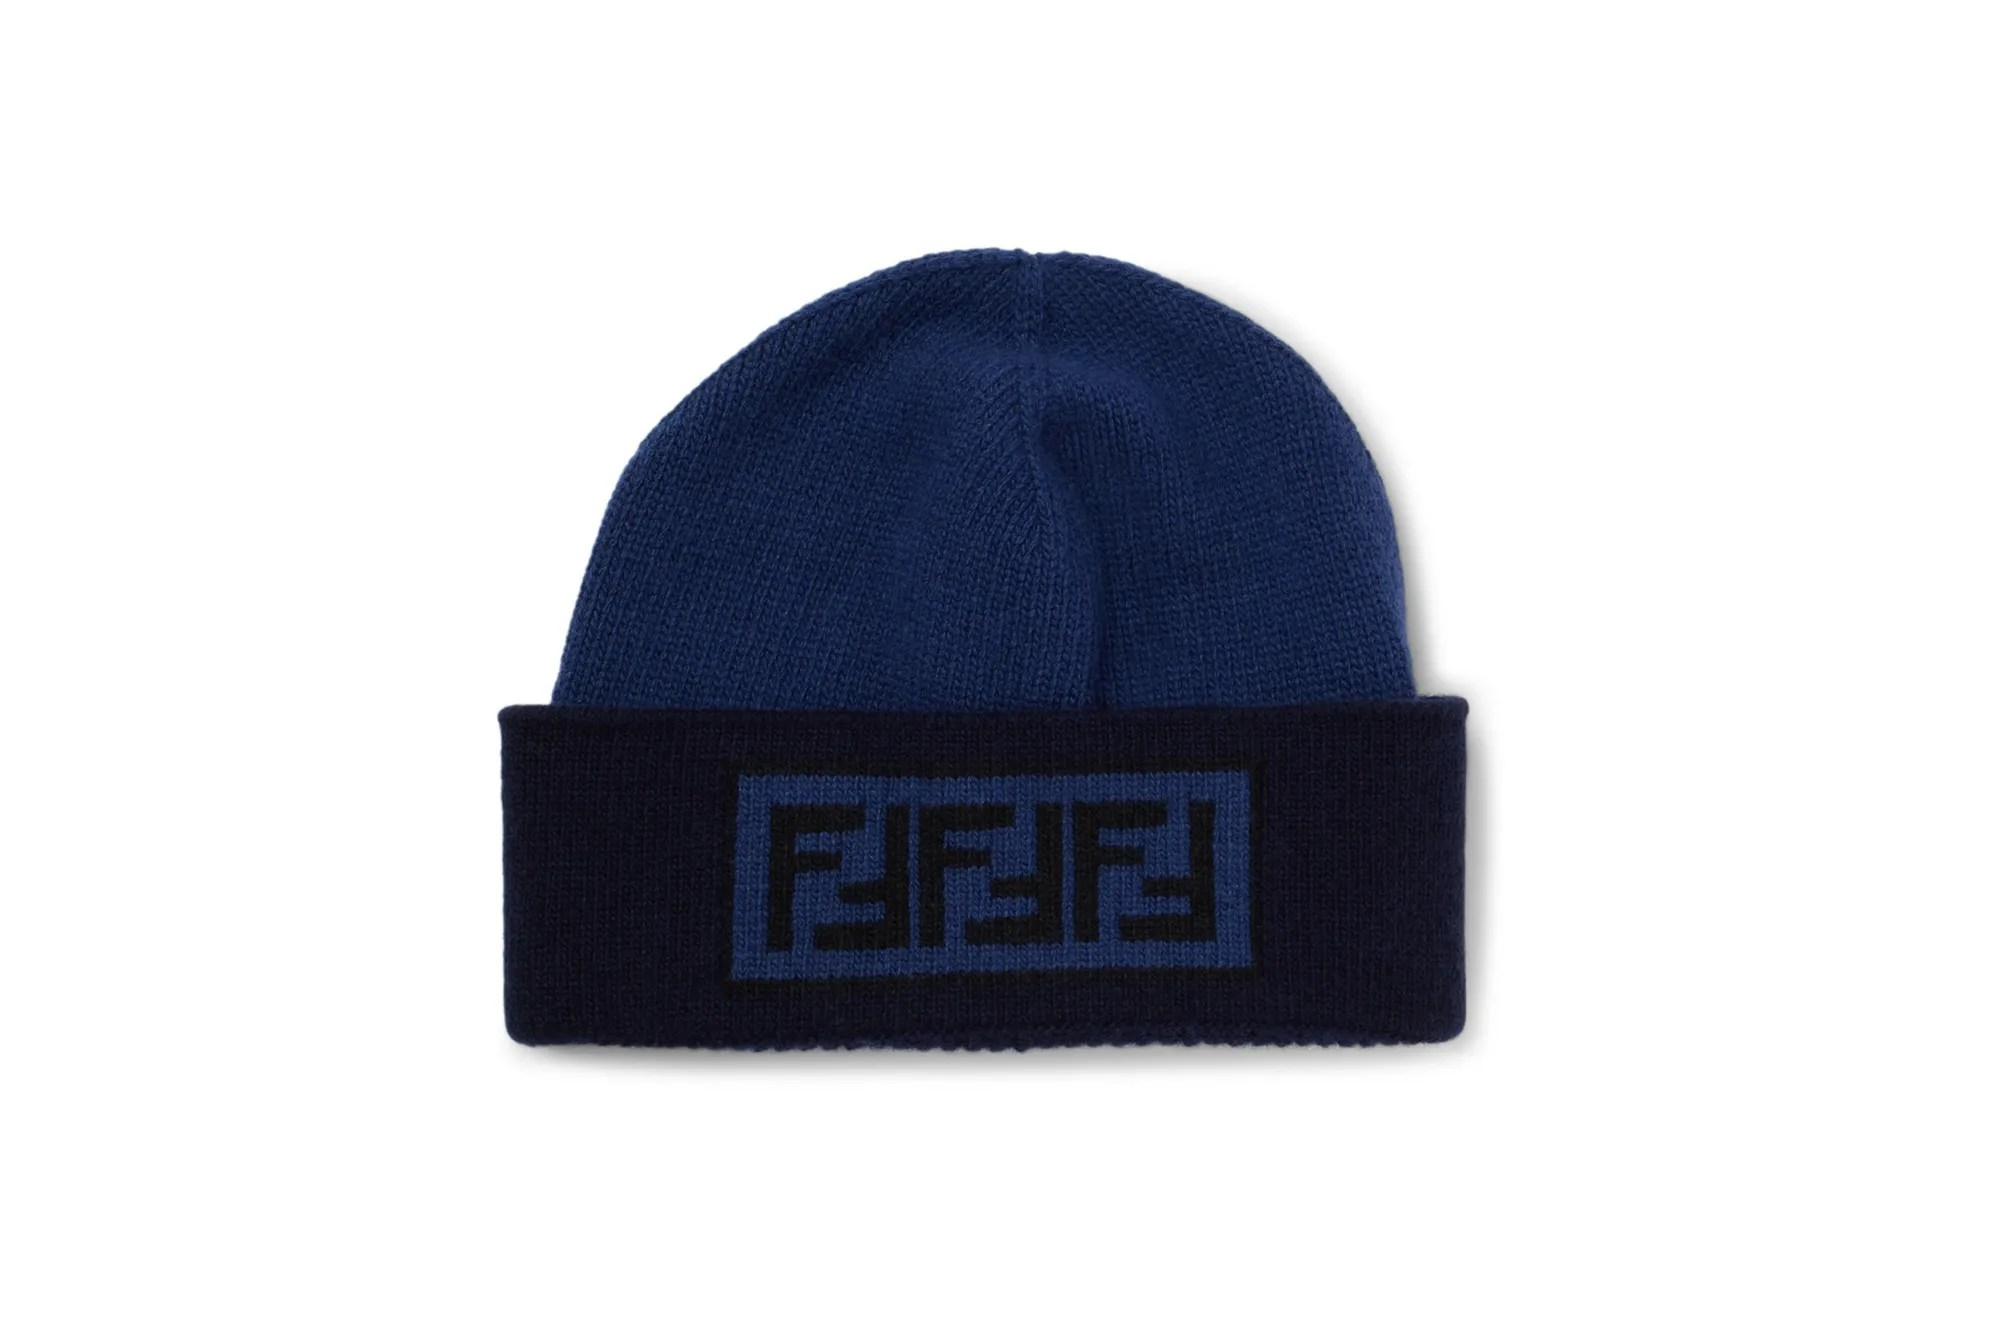 134a71a3 The Best Beanies Are the Cherry On Top of Your Cold-Weather Fits ...